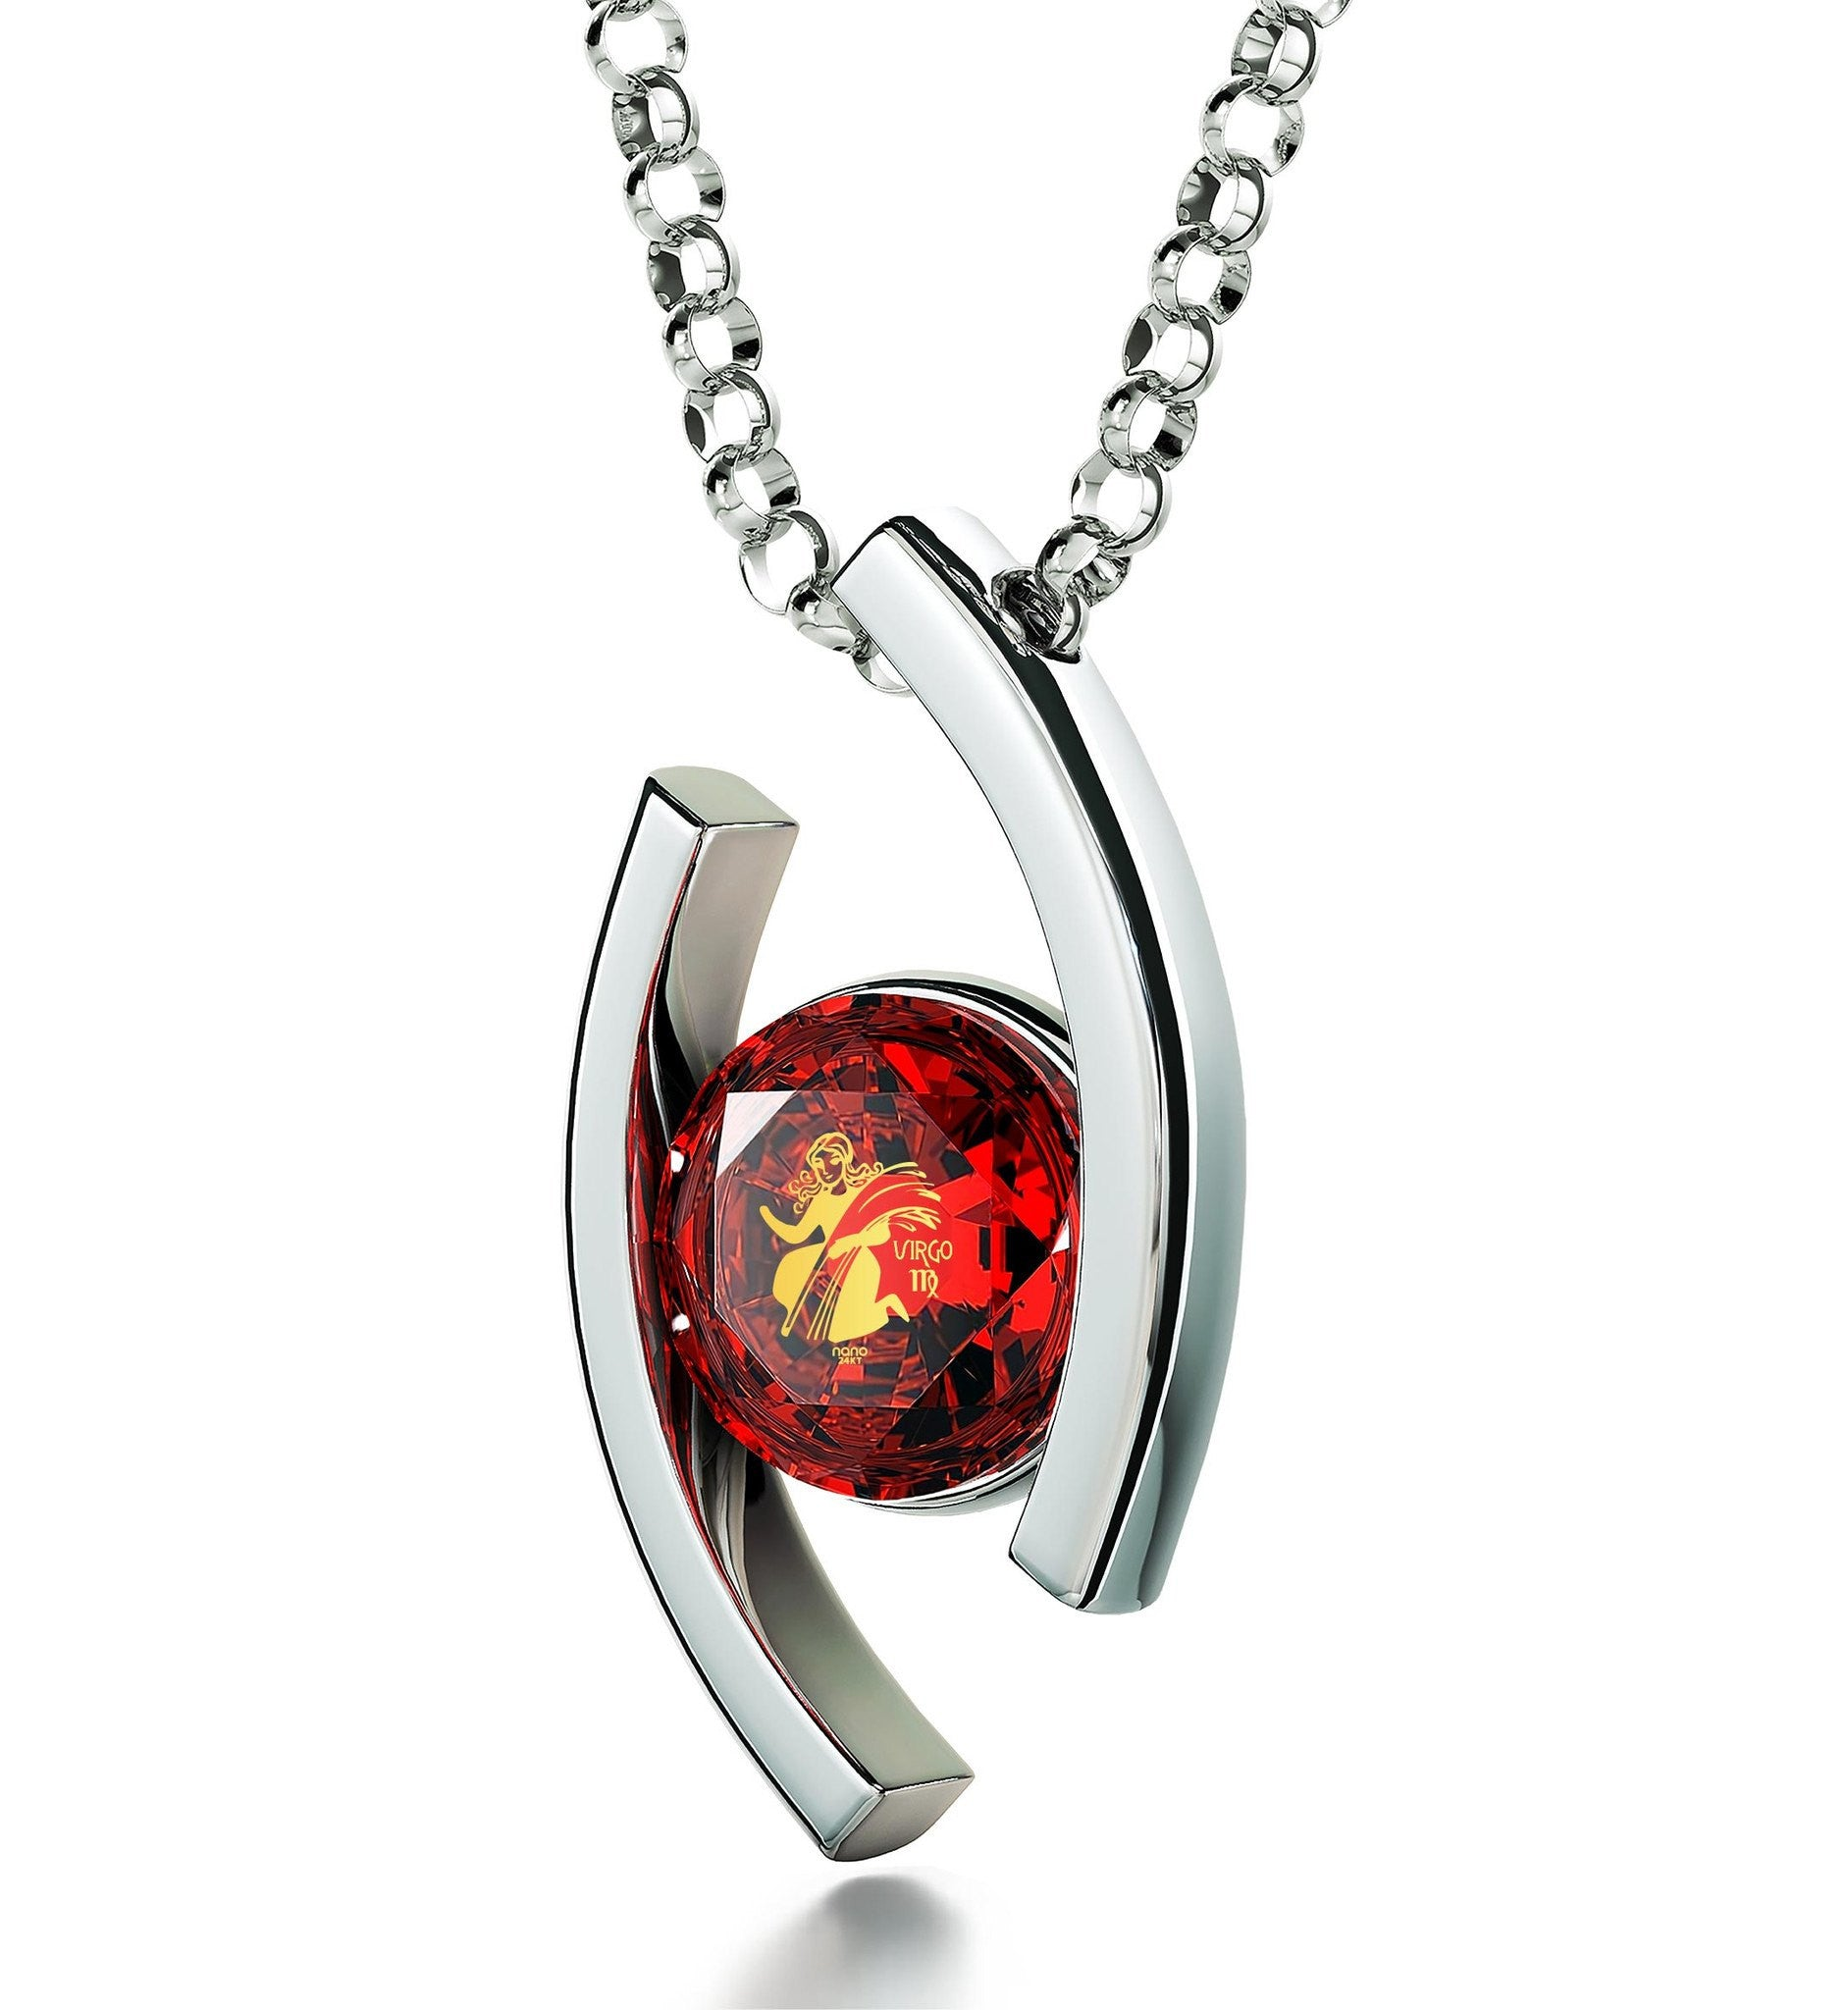 """Virgo Jewelry With 24k Zodiac Imprint, Perfect Valentines Gift for Her, Birthday Present for Wife, Red Pendant Necklace"""